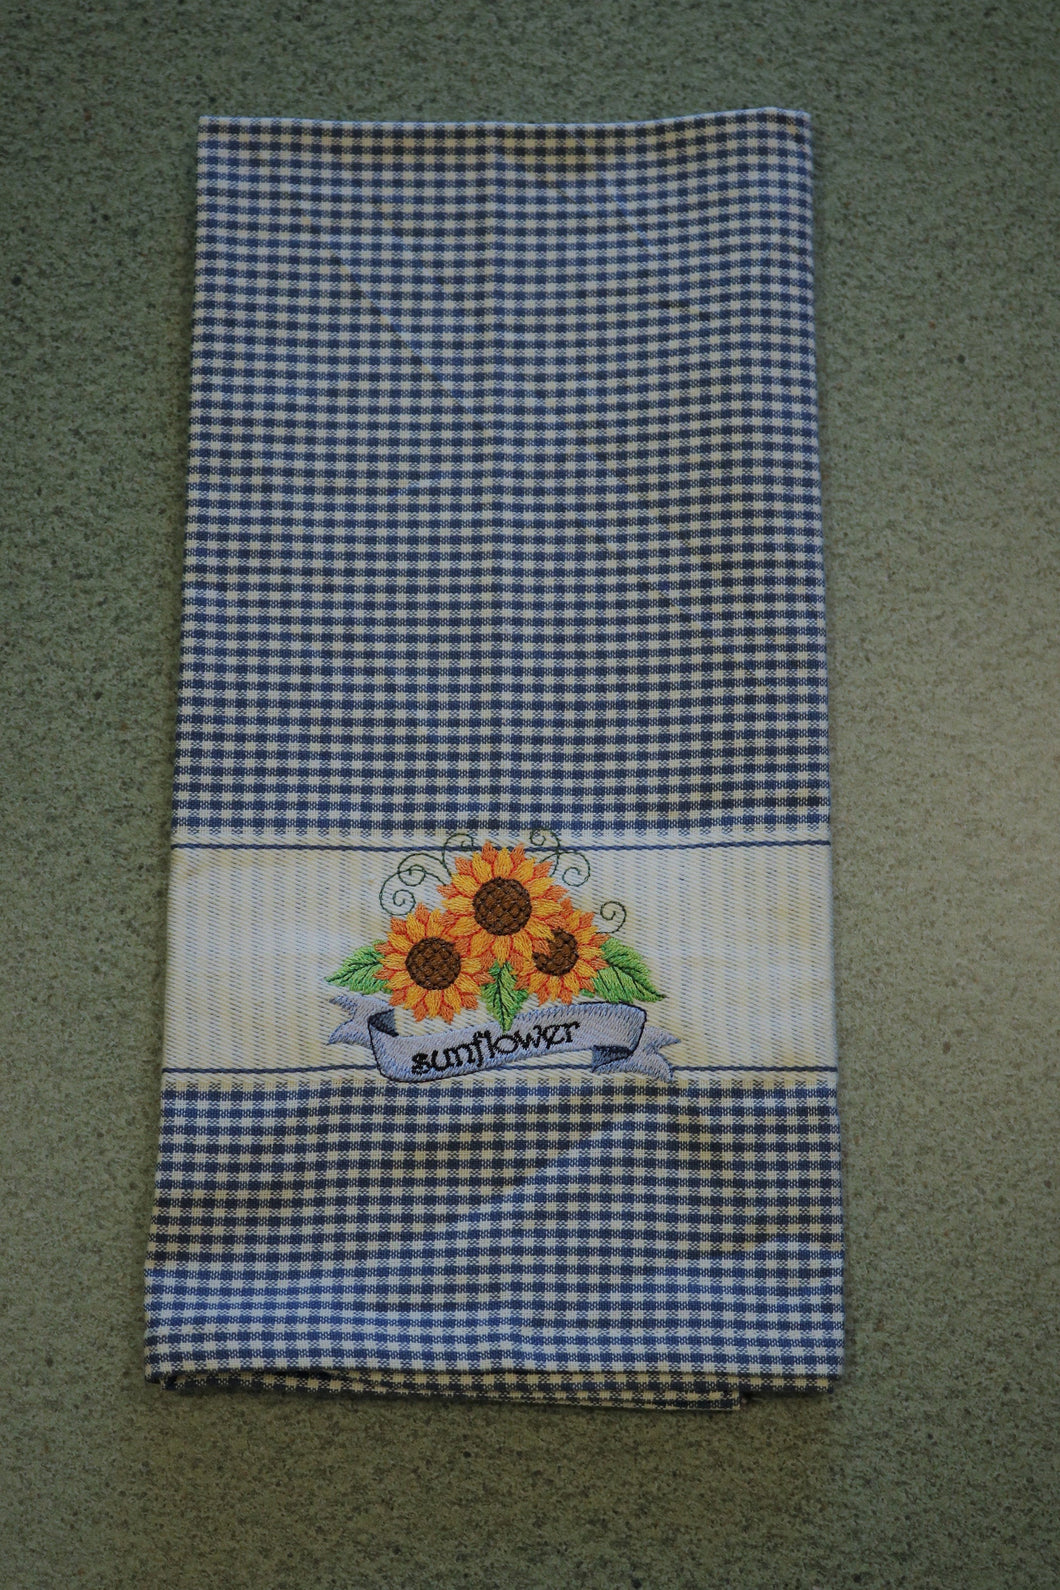 Blue & White Sunflowers Embroidered 100% Cotton Kitchen Towel